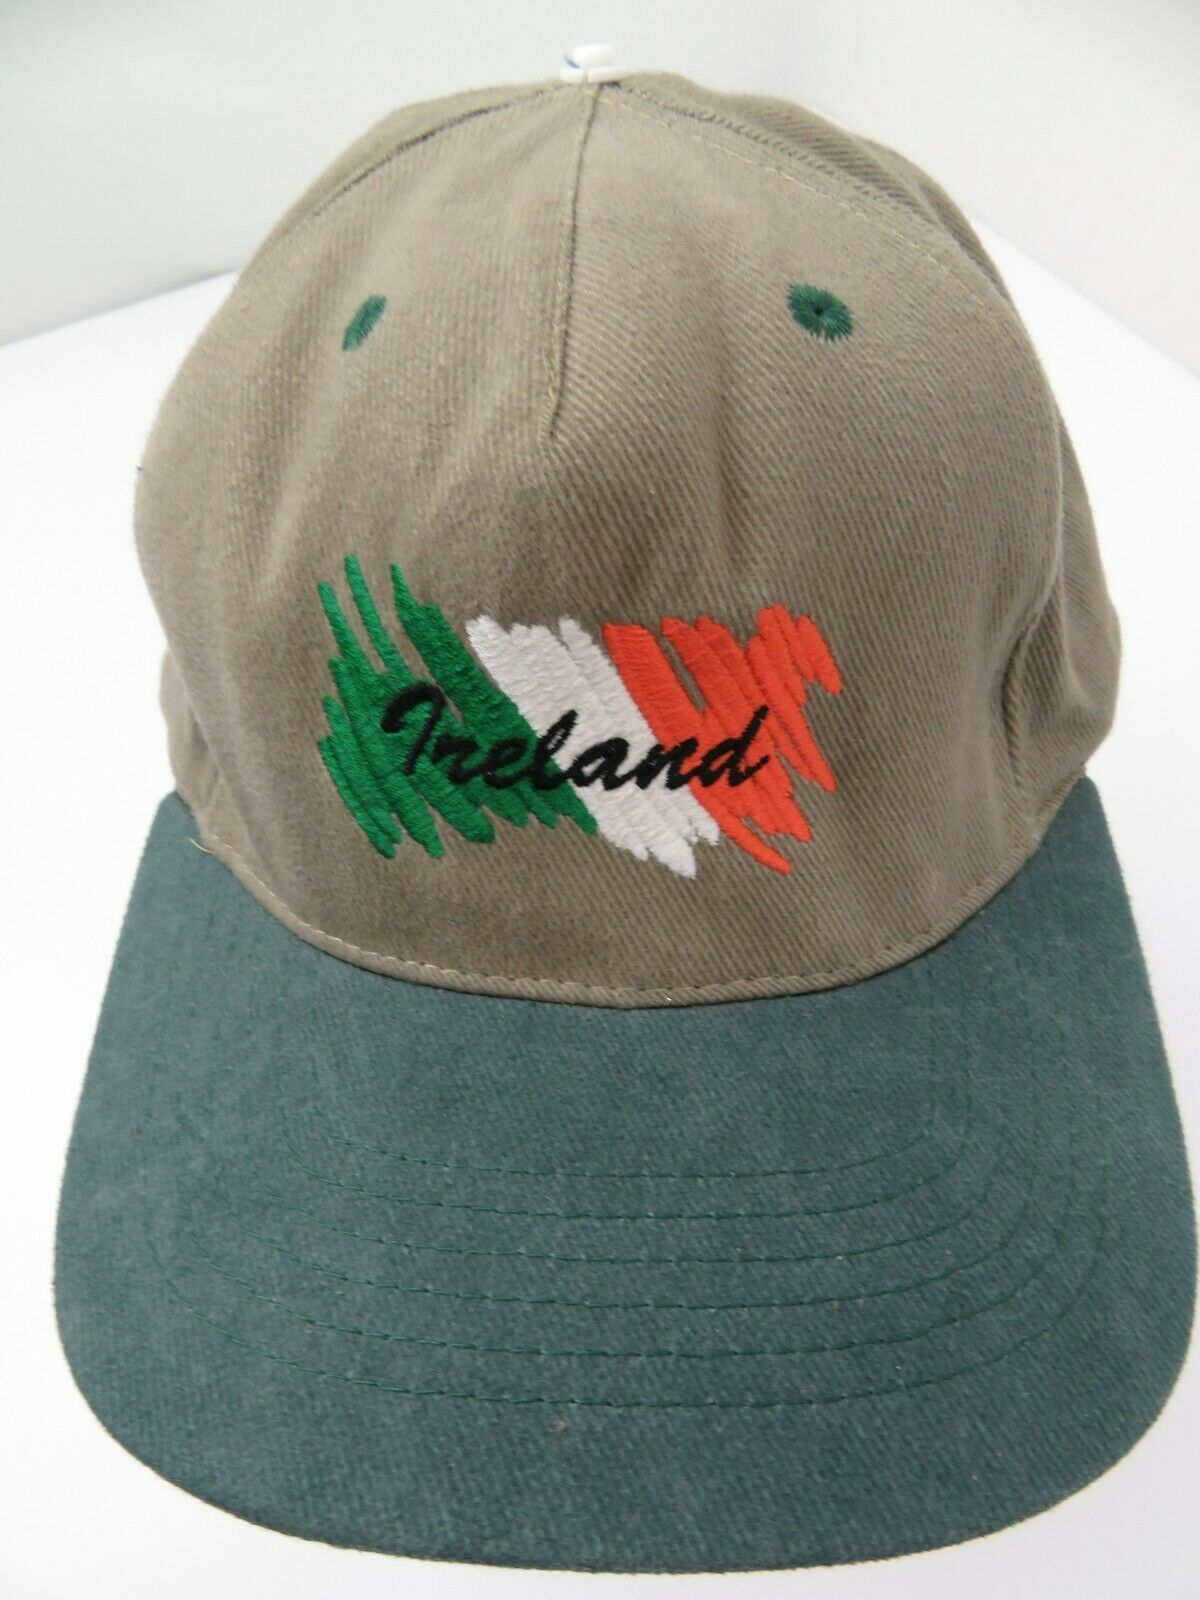 Primary image for Ireland Vintage Adjustable Adult Cap Hat